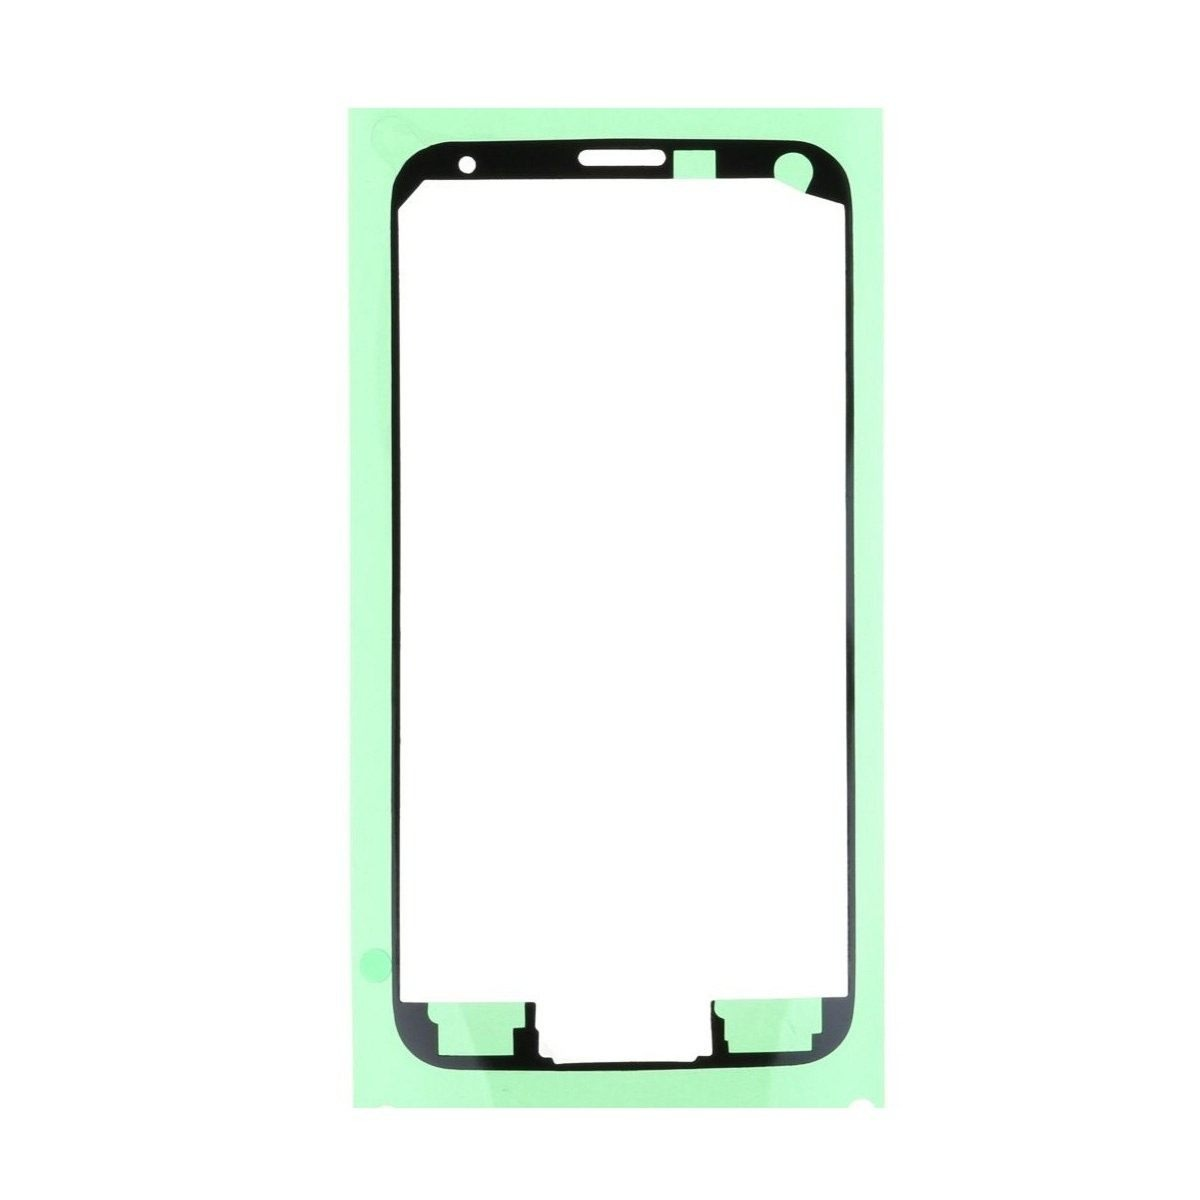 Samsung Galaxy S5 White Front Glass Lens with Adhesive and Free Tools Pic2